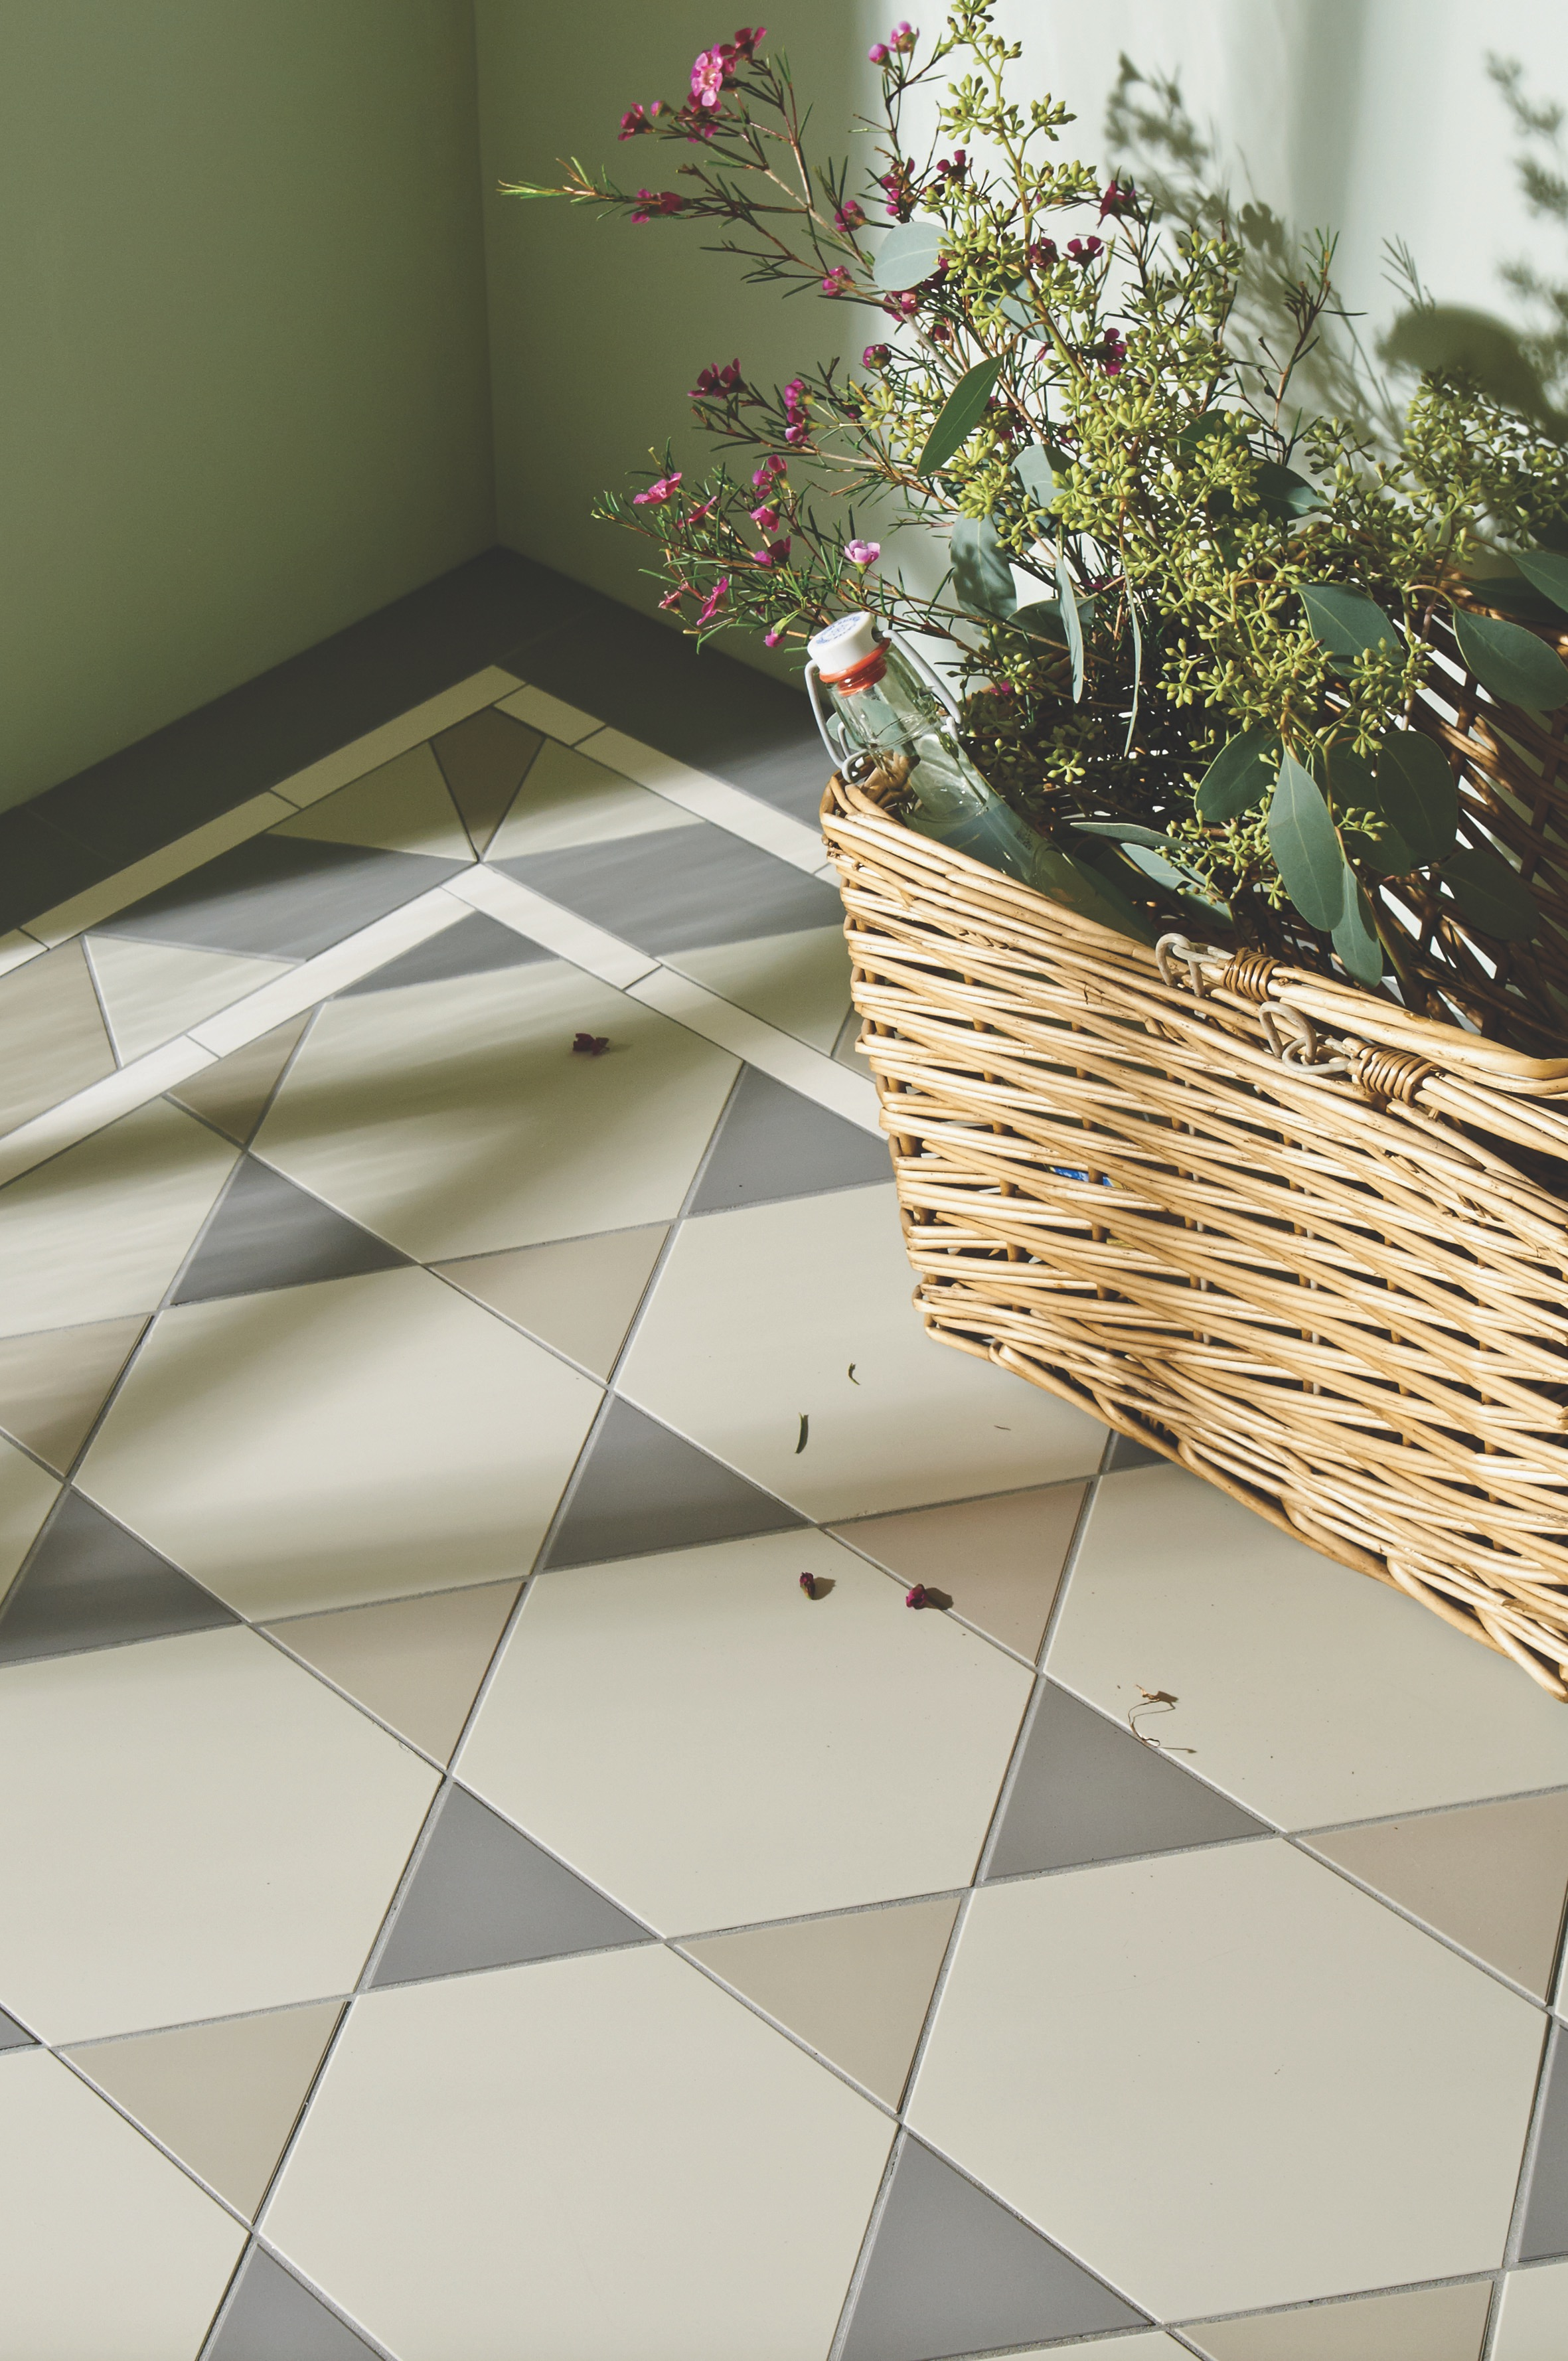 Original Style - VFT - Hexham pattern with Rossetti border in Chester Mews, Holkham Dune and Revival Grey 4.jpg